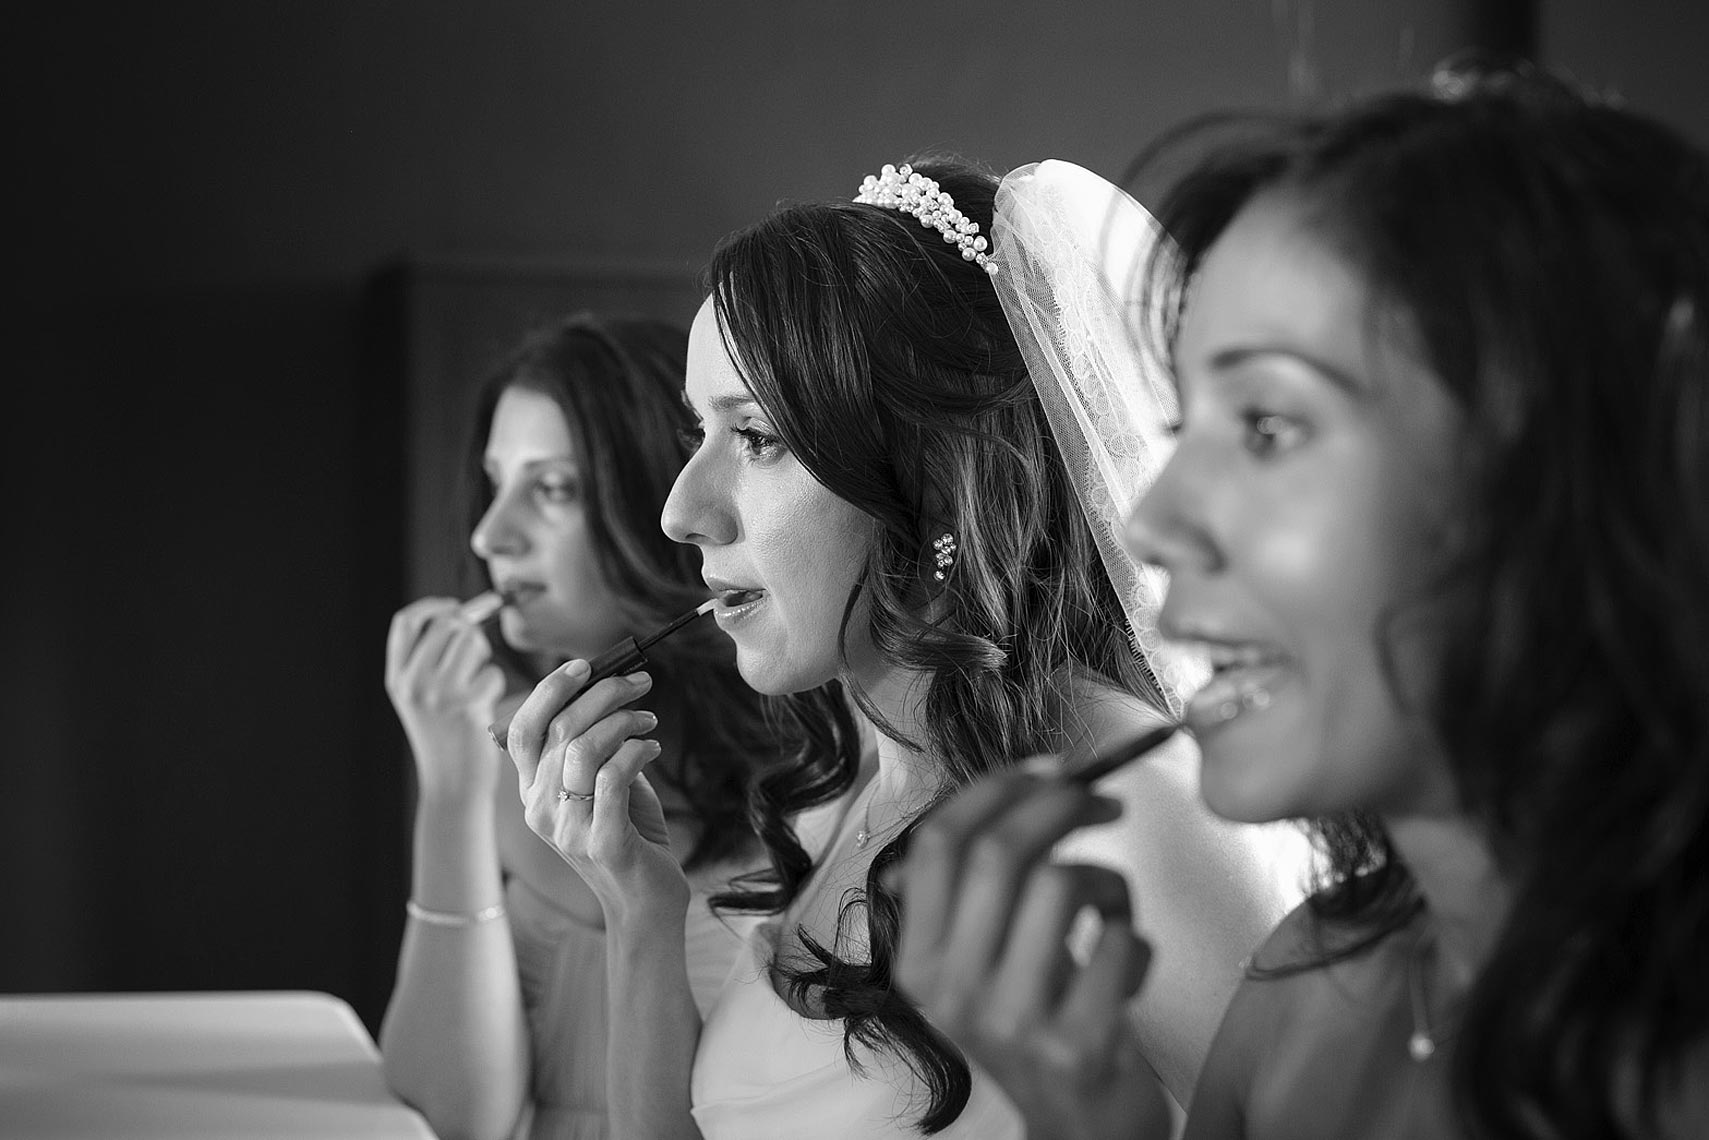 Reportage wedding photography in London | gallery 2 | 38